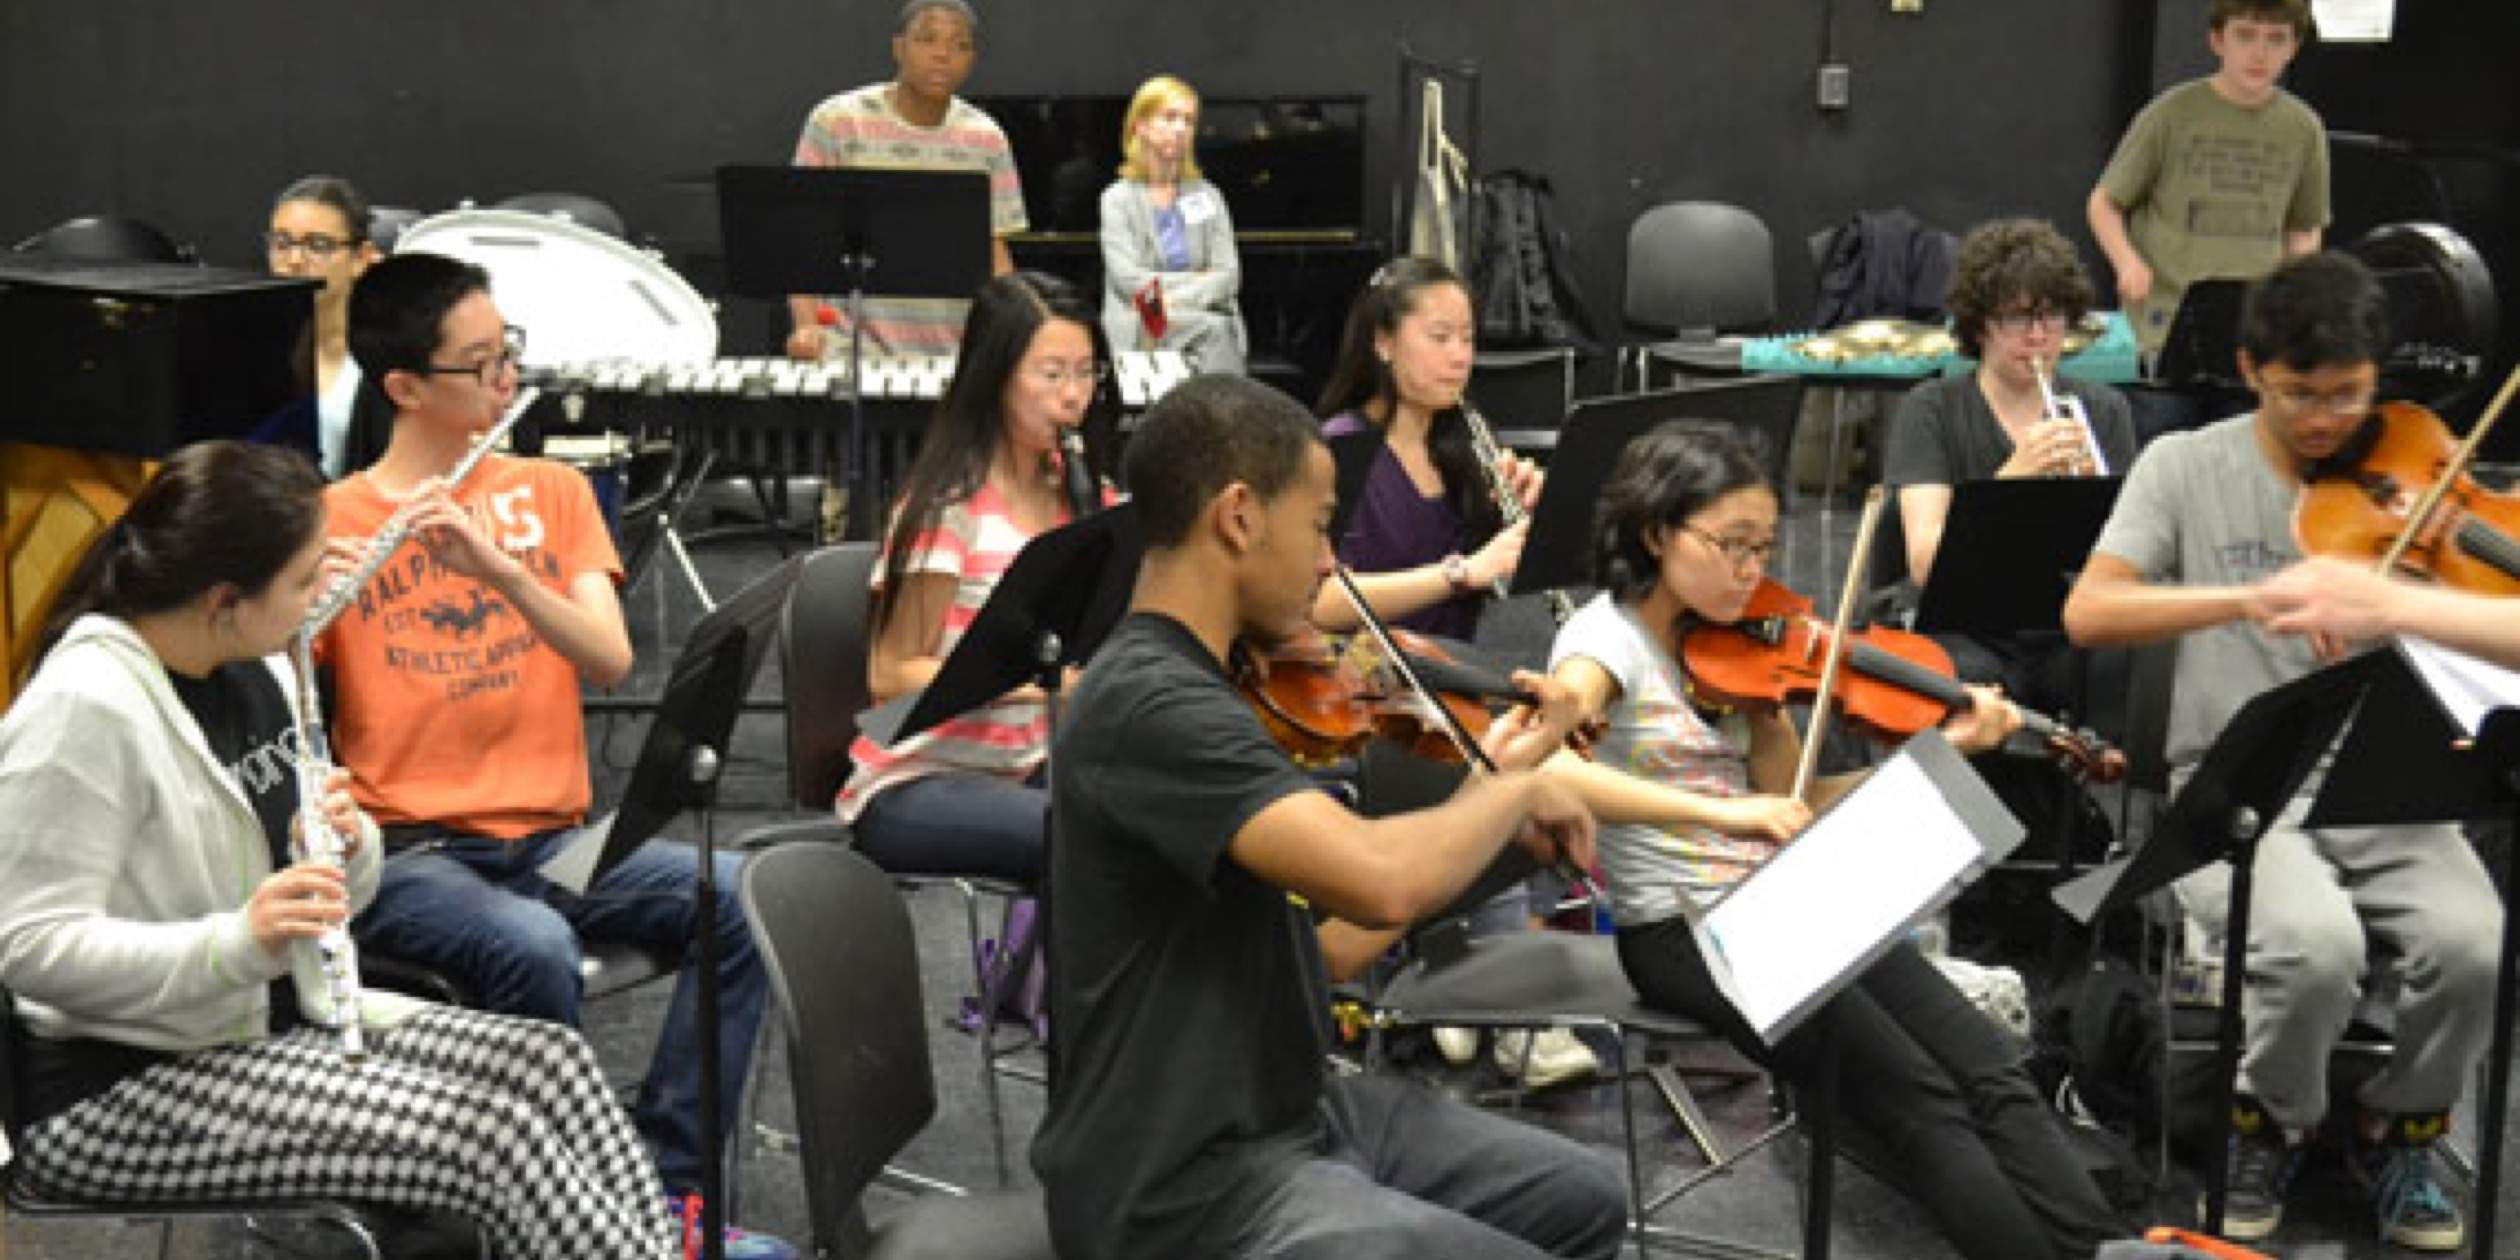 SMS composers rehearsing for the NY PHIL BIENNIAL